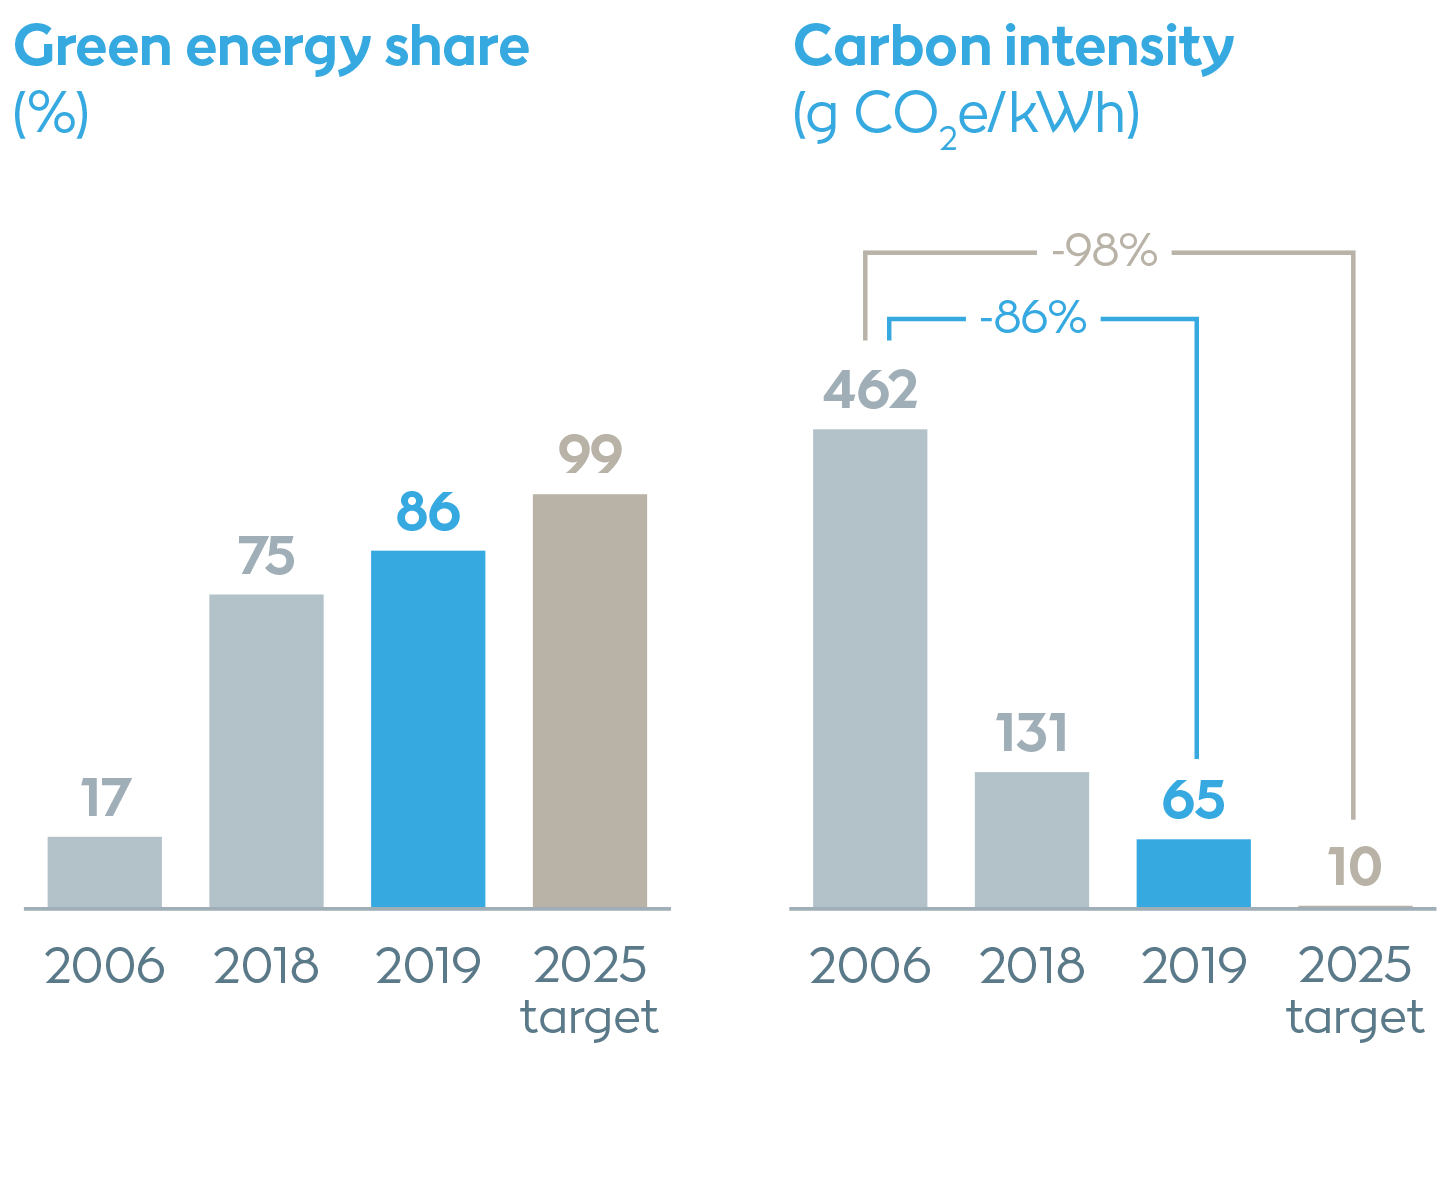 Decarbonisation of energy generation and operations